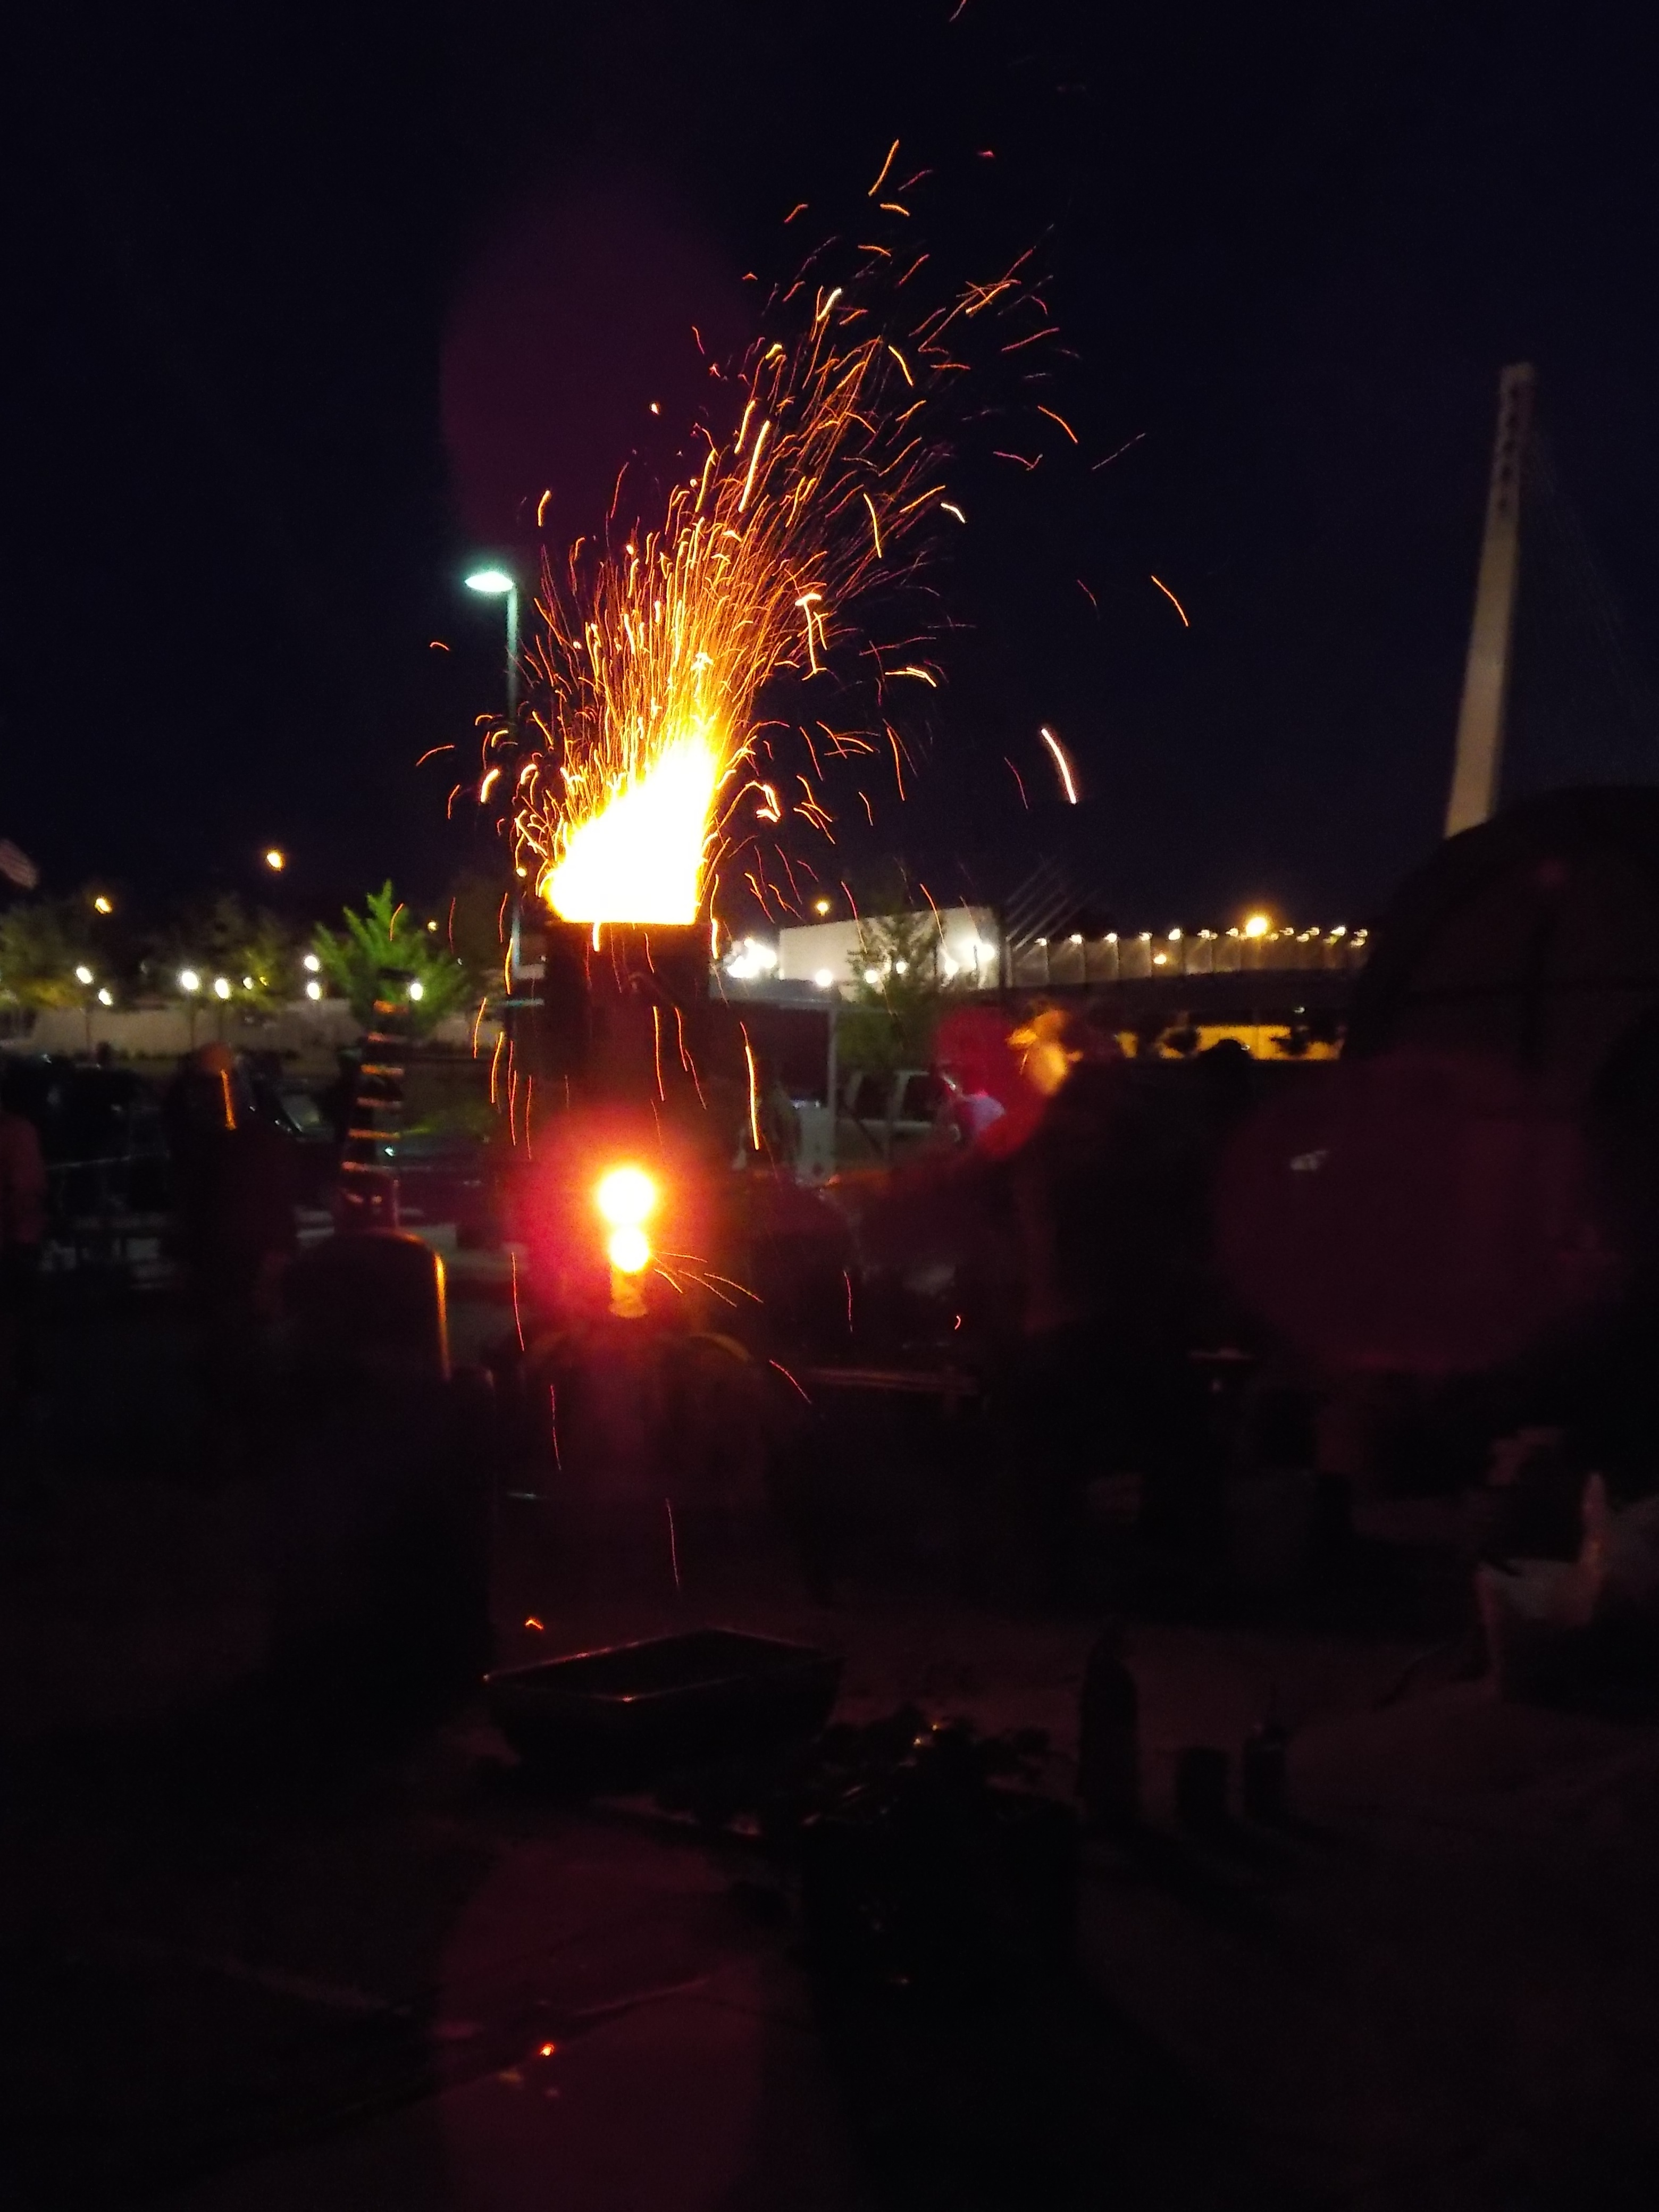 Casey's furnace for the iron pour